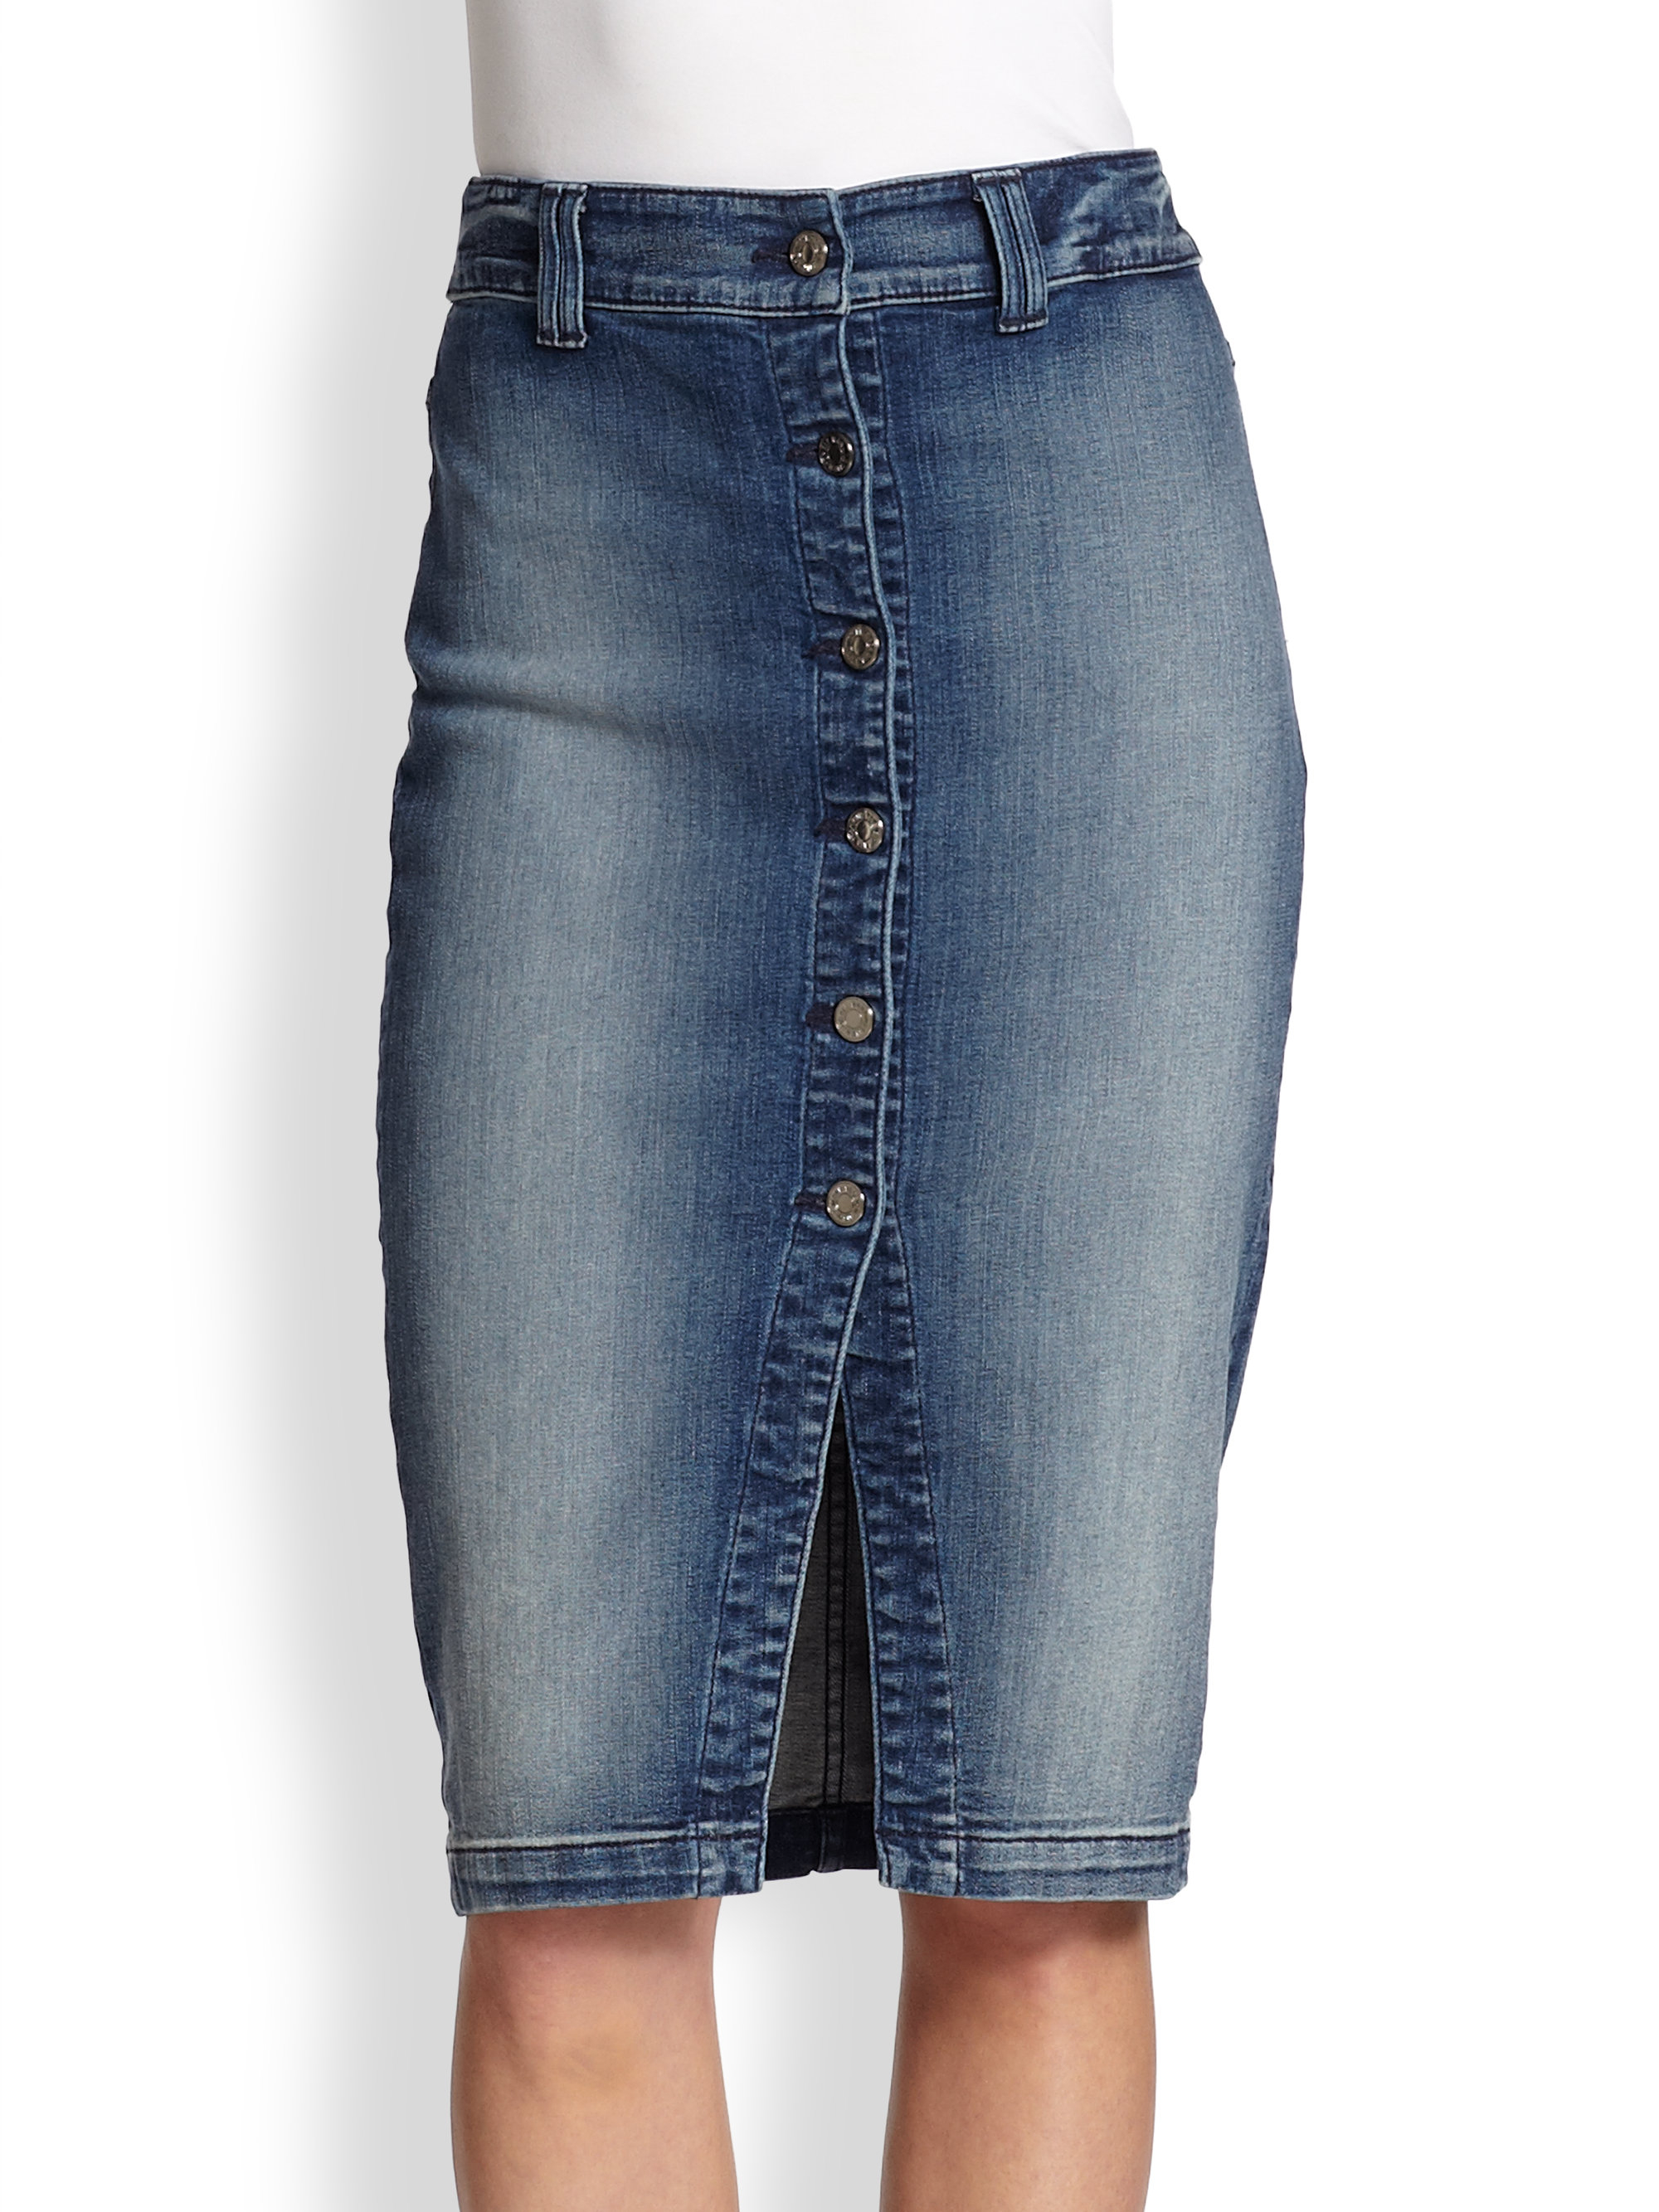 666f4596a7f60 7 For All Mankind Buttonfront Stretch Denim Pencil Skirt .